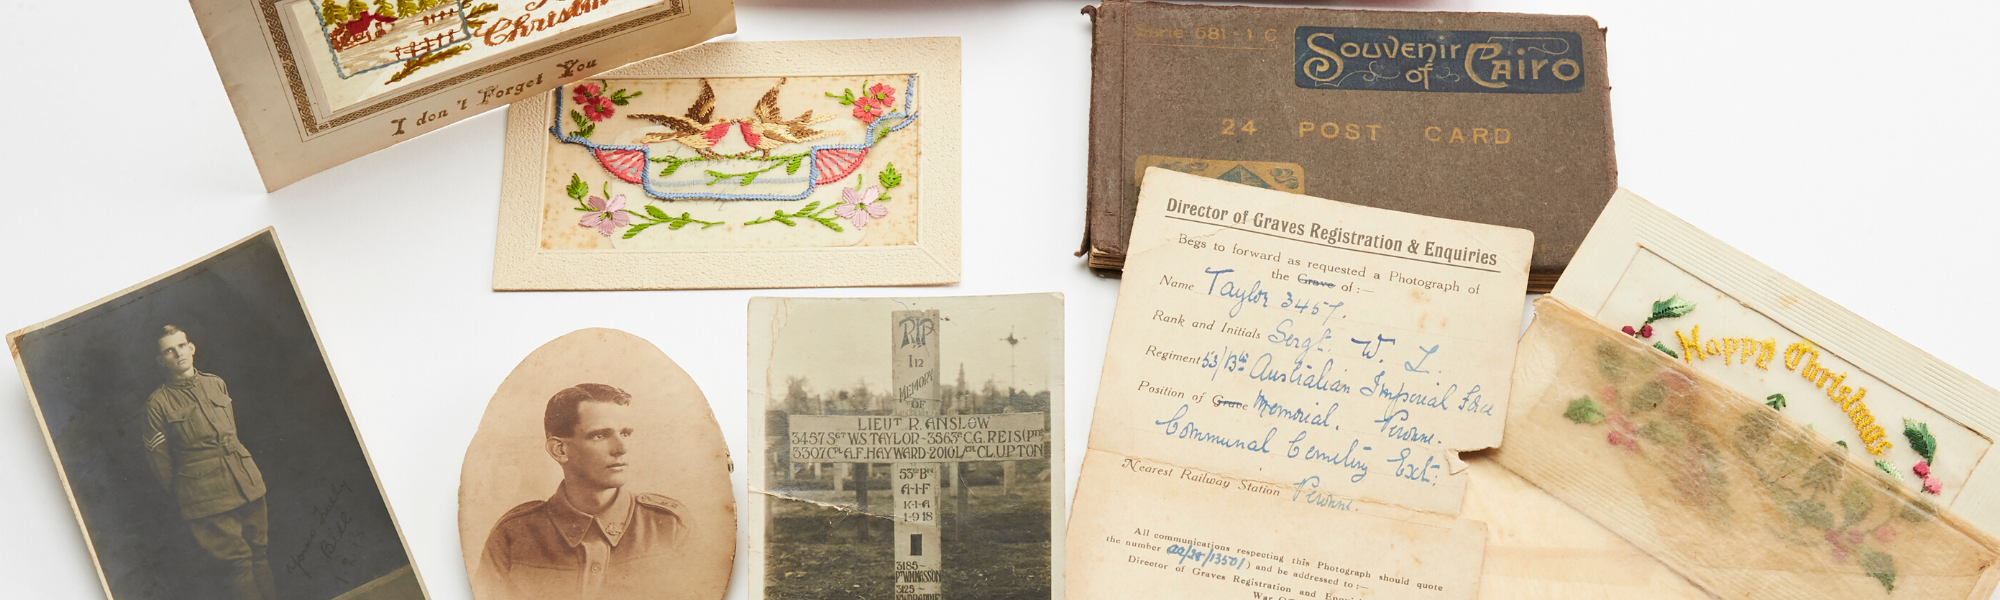 A collection of photographs and postcards sent by WilliamTaylor who served with the AIF during the Great War